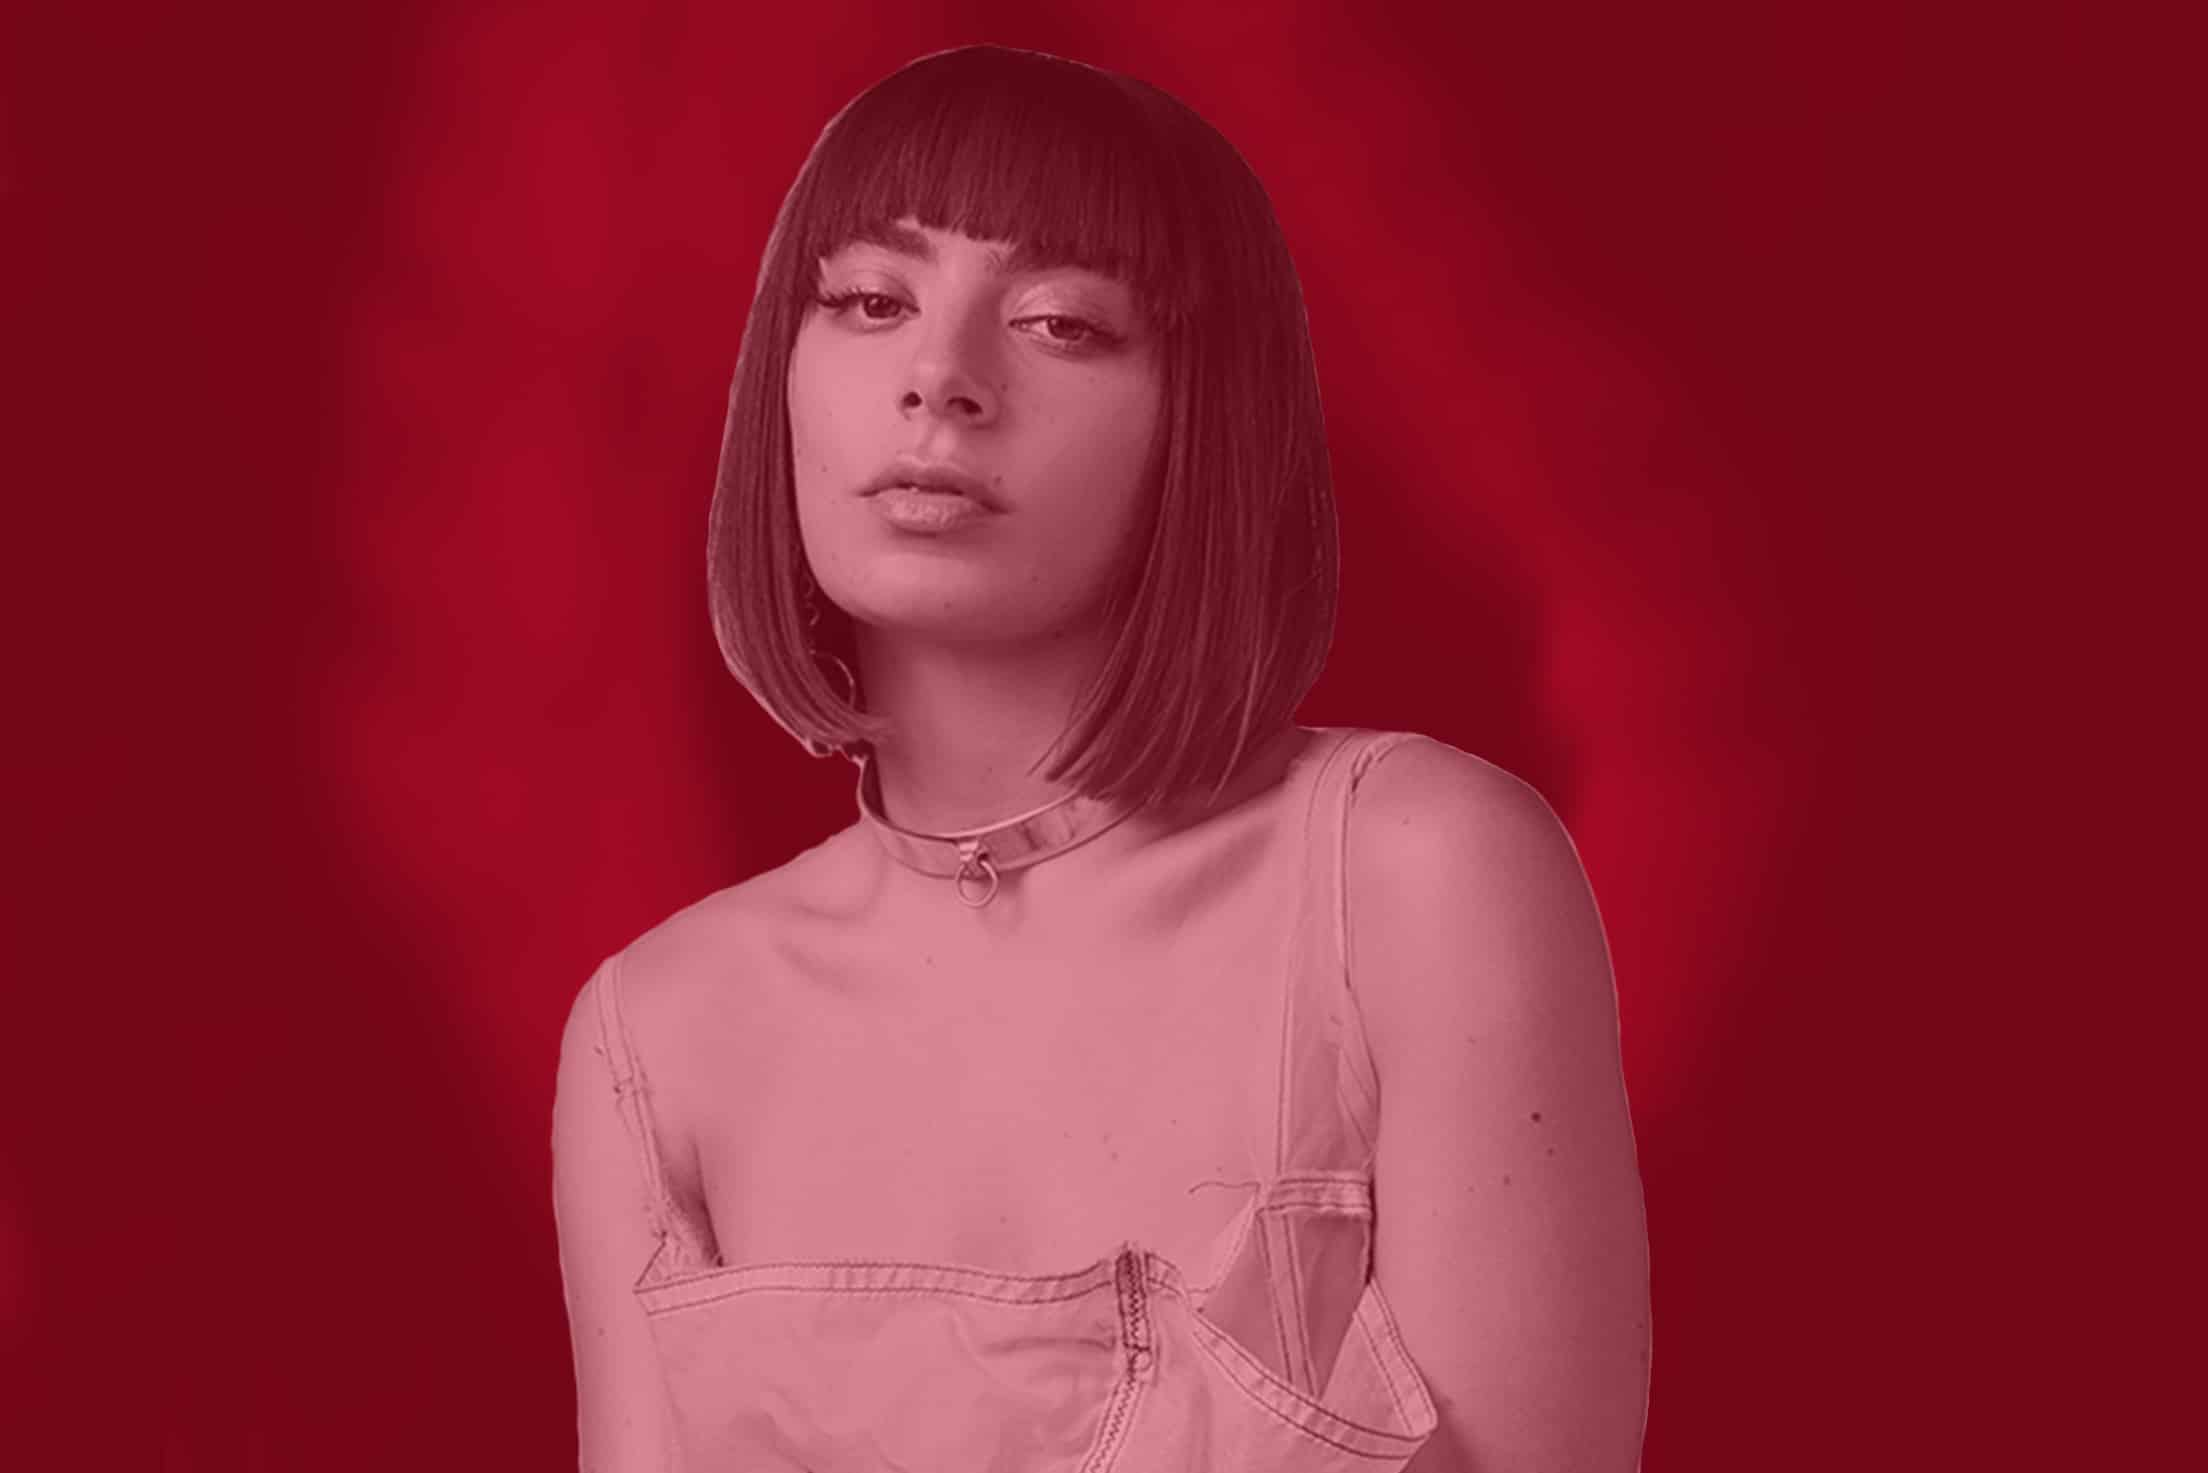 CHARLI XCX DROPS SELF-ISOLATION ALBUM 'HOW I'M FEELING'